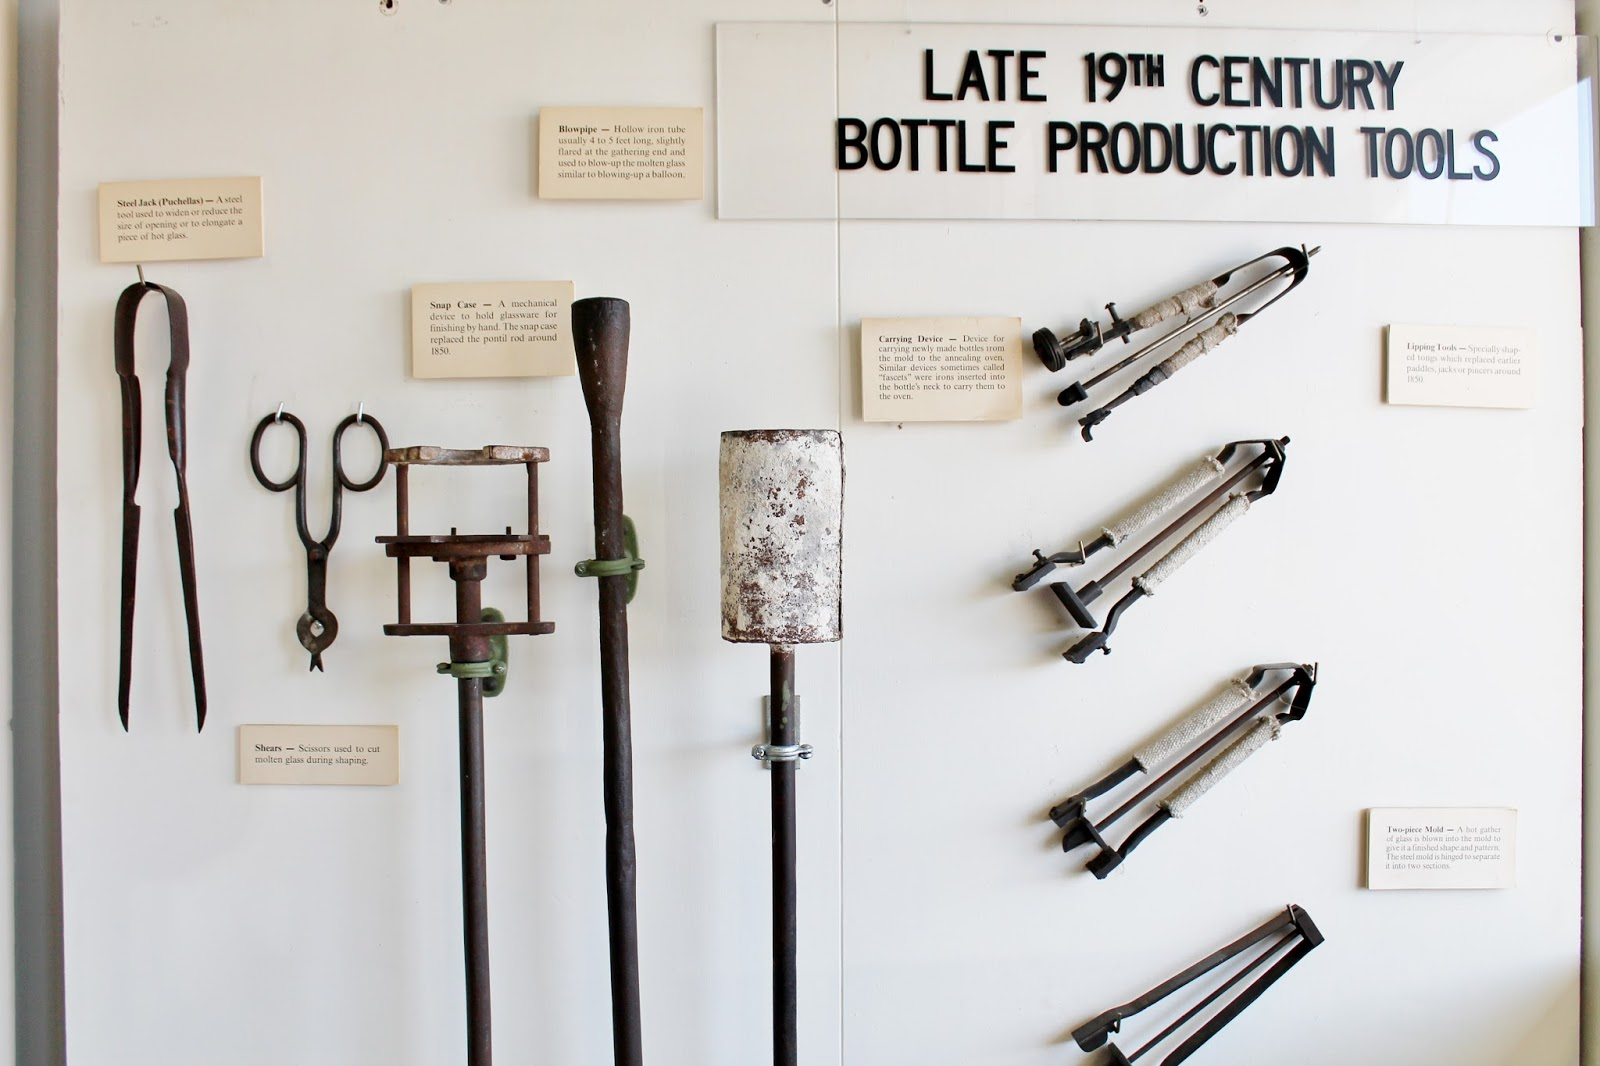 The National Bottle Museum in Ballston Spa (NY)